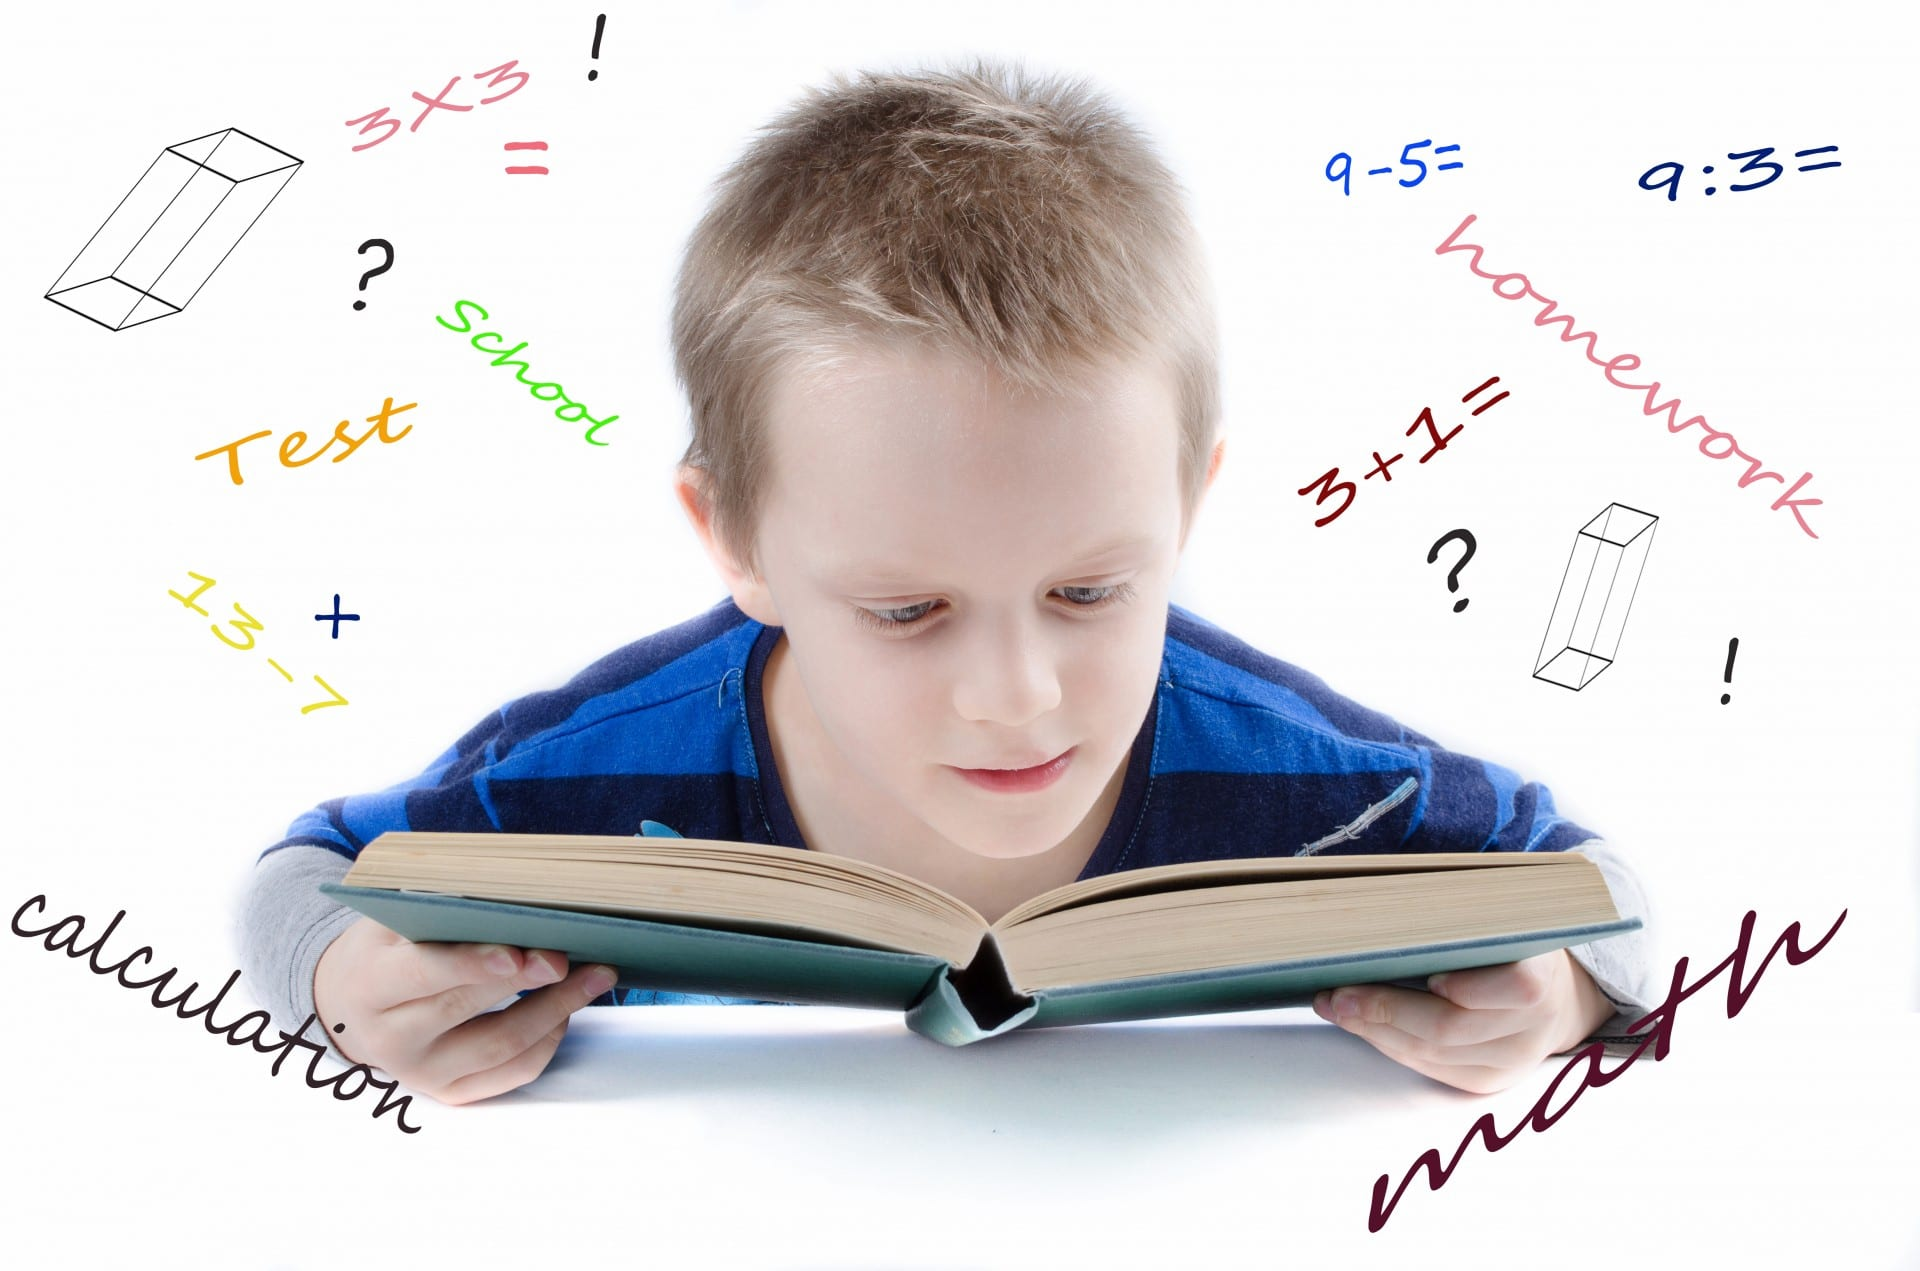 Developmental process of boy looking at school book